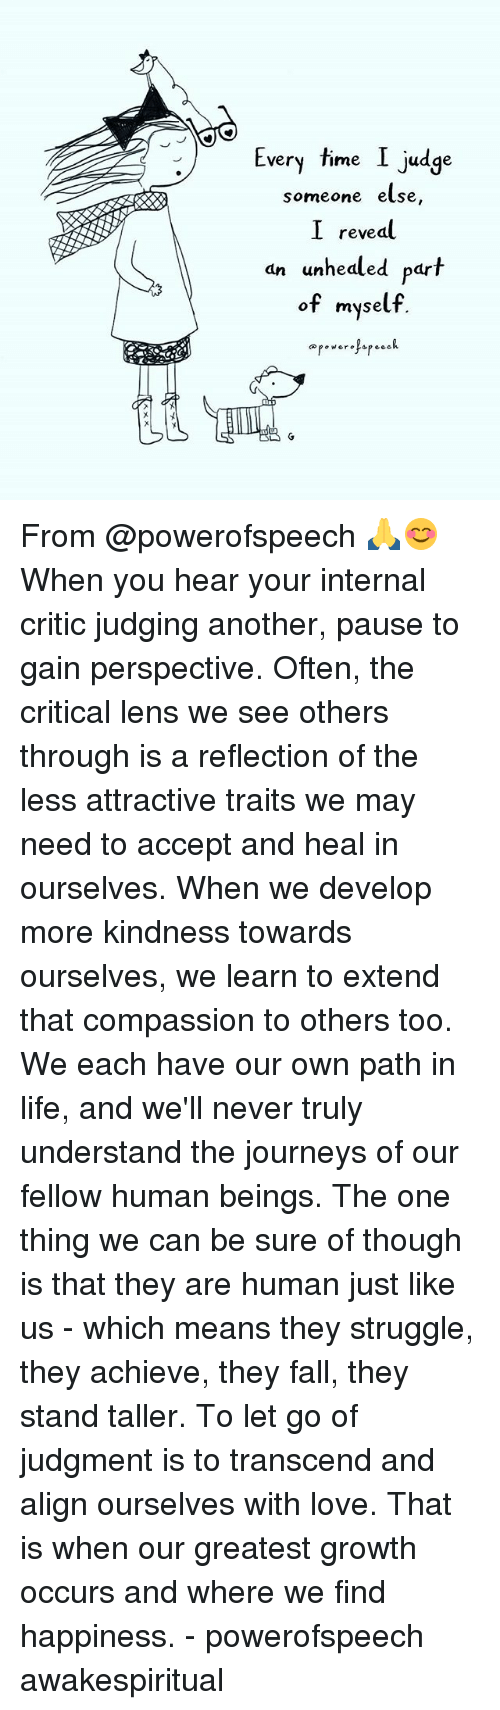 Fall, Life, and Love: Every time I judge  very Time Judge  someone else,  I reveal  an unhealed part  dn unhedled par  of myself. From @powerofspeech 🙏😊 When you hear your internal critic judging another, pause to gain perspective. Often, the critical lens we see others through is a reflection of the less attractive traits we may need to accept and heal in ourselves. When we develop more kindness towards ourselves, we learn to extend that compassion to others too. We each have our own path in life, and we'll never truly understand the journeys of our fellow human beings. The one thing we can be sure of though is that they are human just like us - which means they struggle, they achieve, they fall, they stand taller. To let go of judgment is to transcend and align ourselves with love. That is when our greatest growth occurs and where we find happiness. - powerofspeech awakespiritual